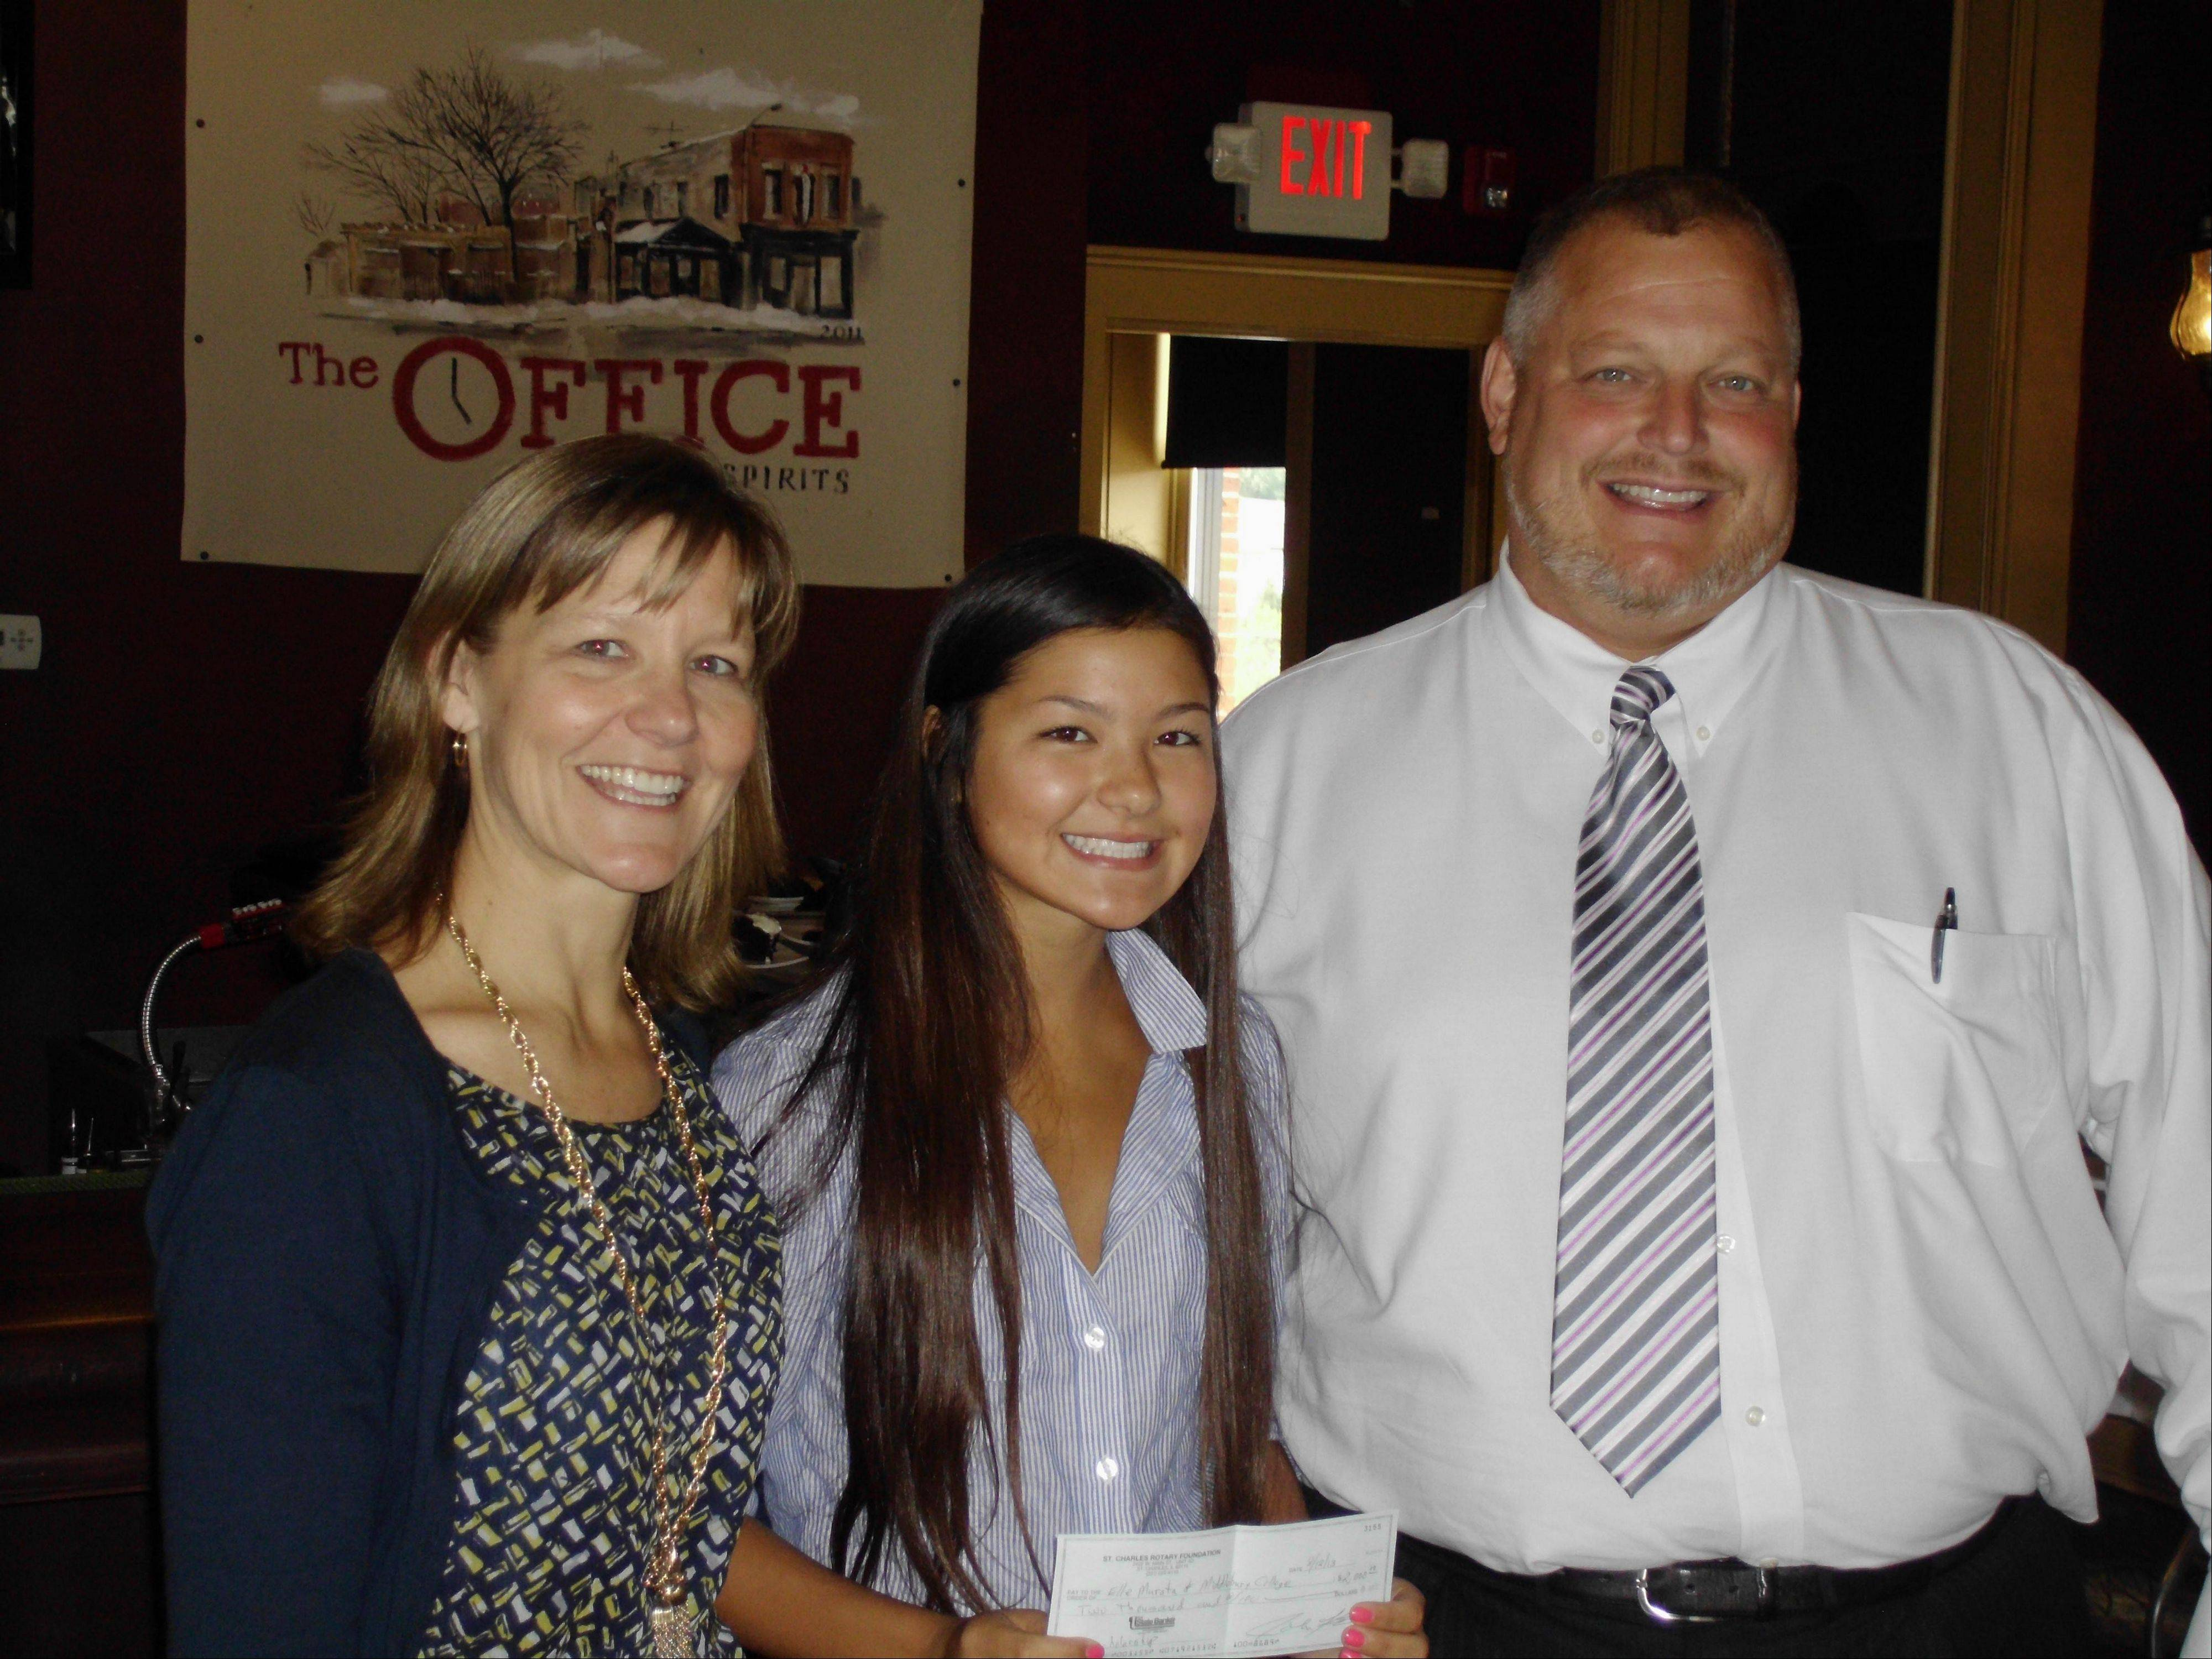 St. Charles Rotary Foundation President Dean Carlson, right, congratulates scholarship winner Elle Murata, with her mother, Kathy Murata.